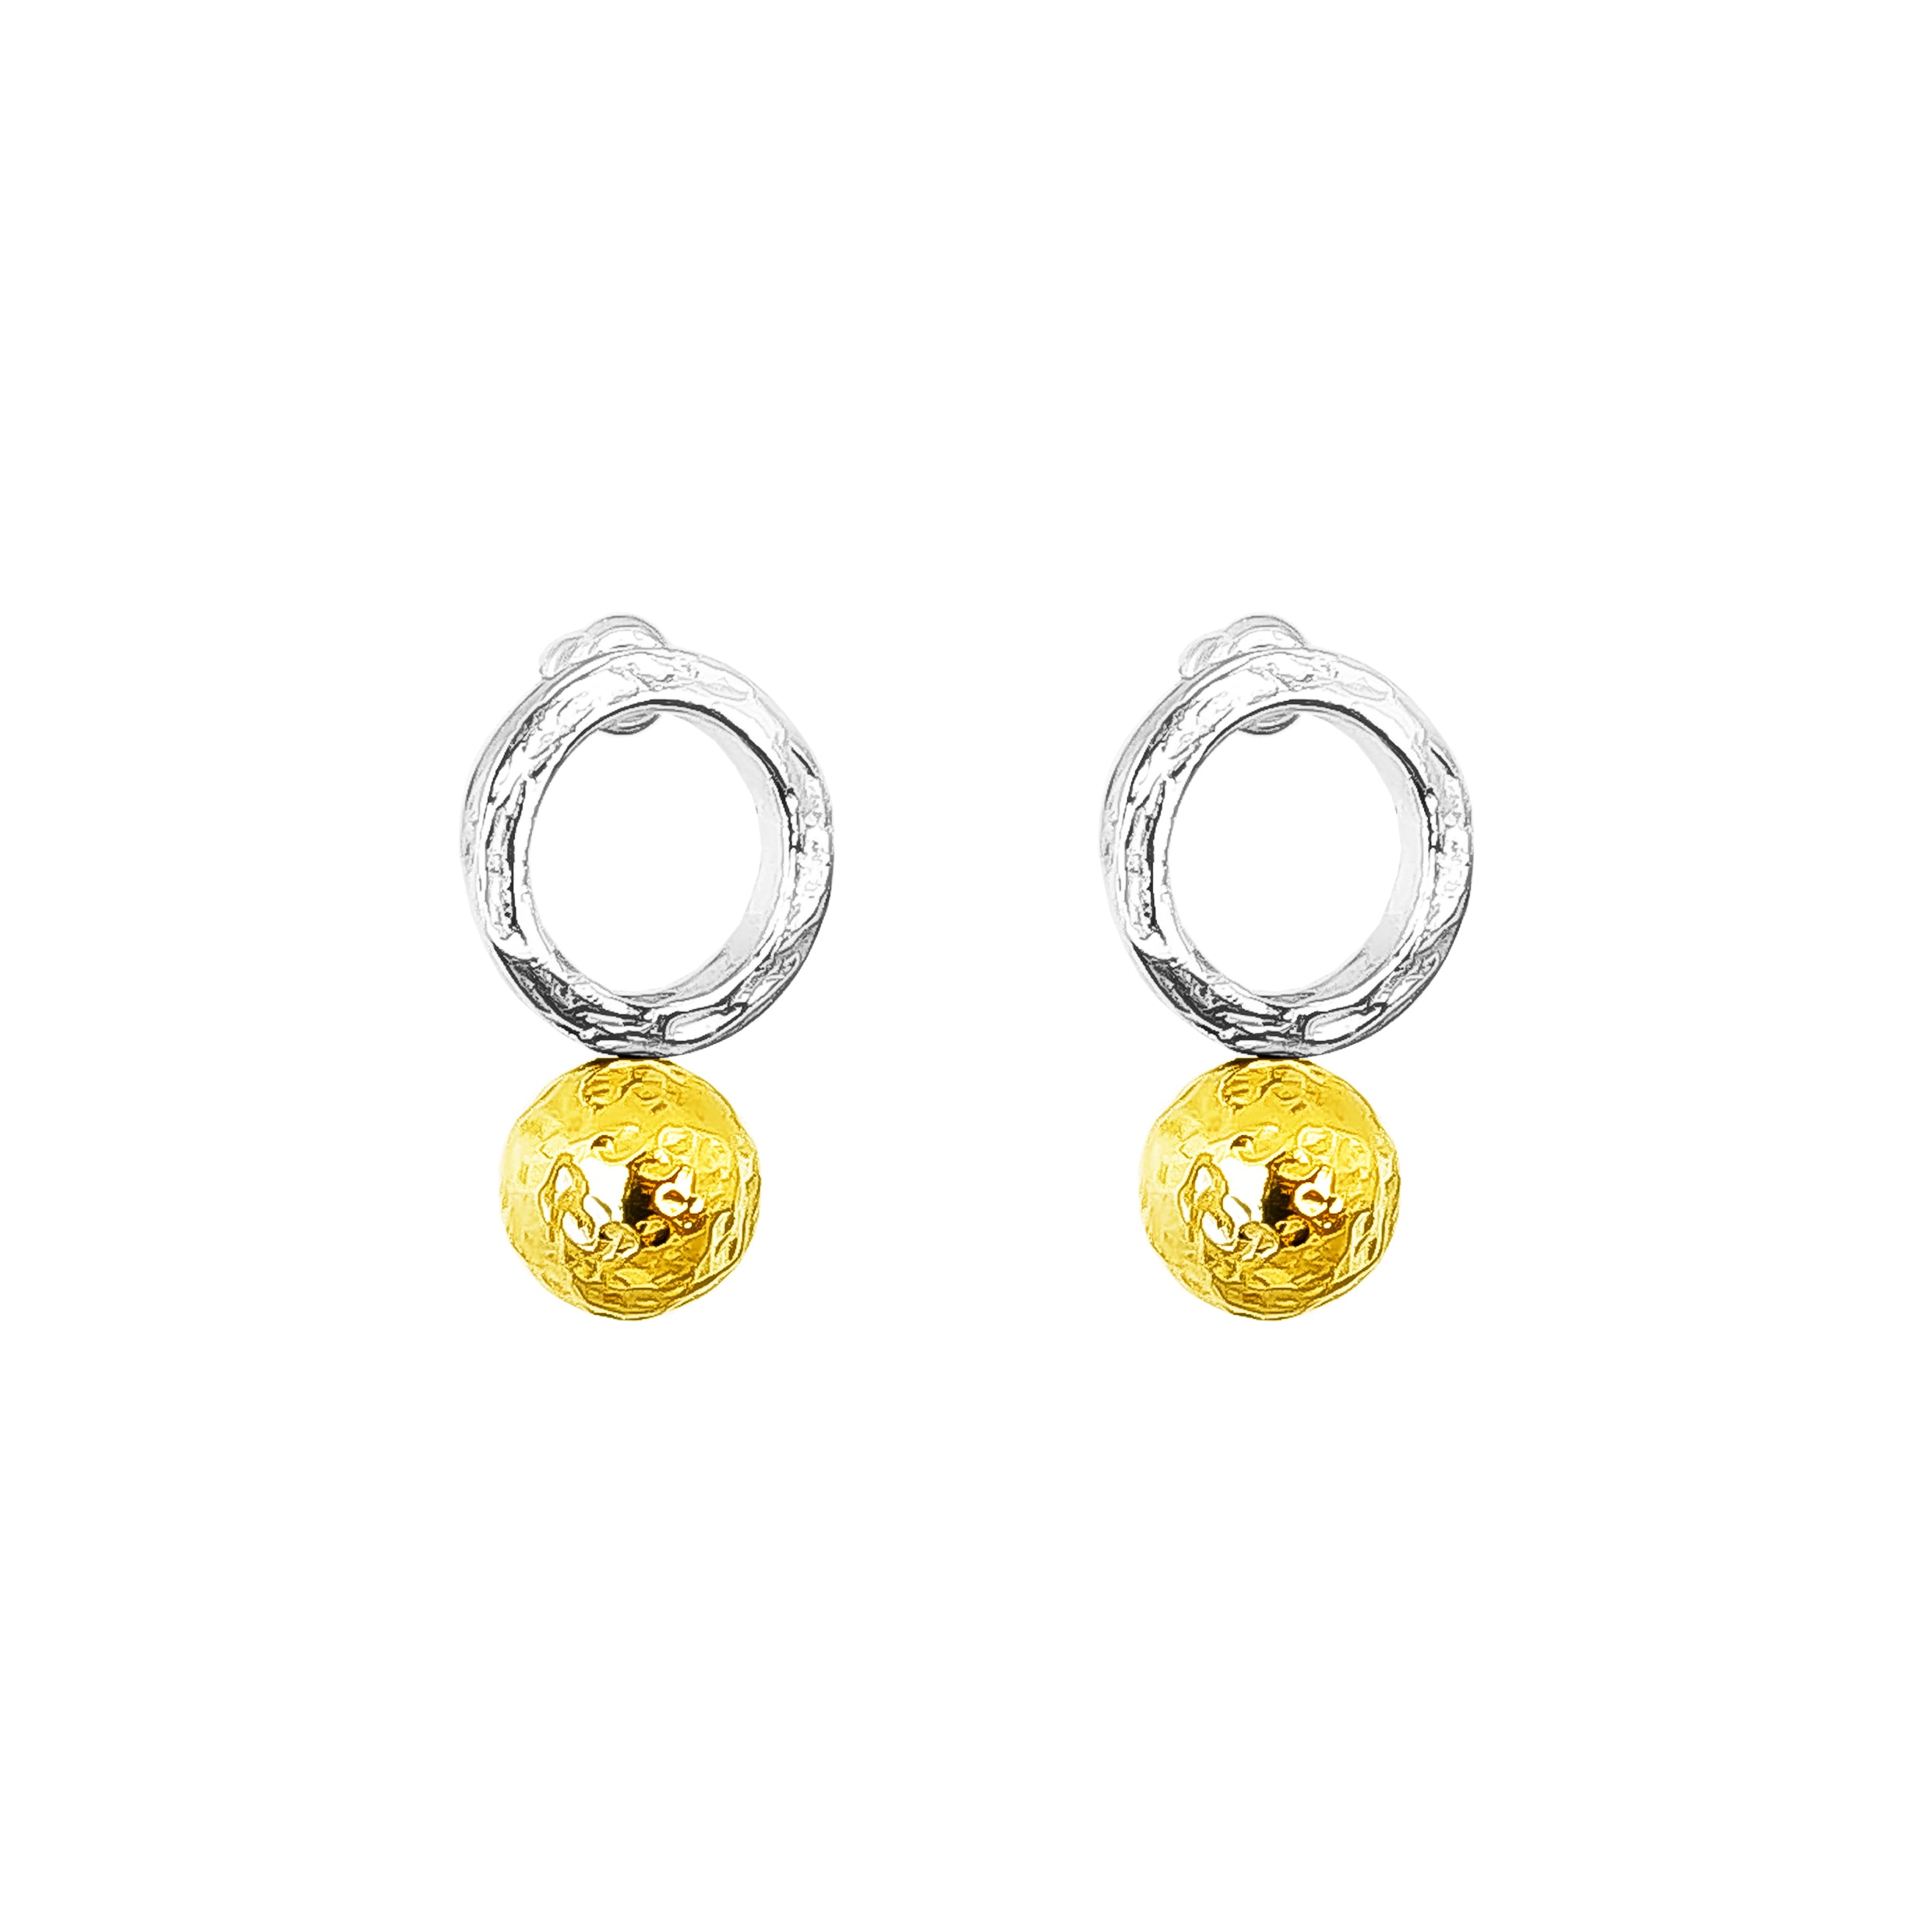 Radison Large Feature Stud Earrings | Hammered Gold Detail